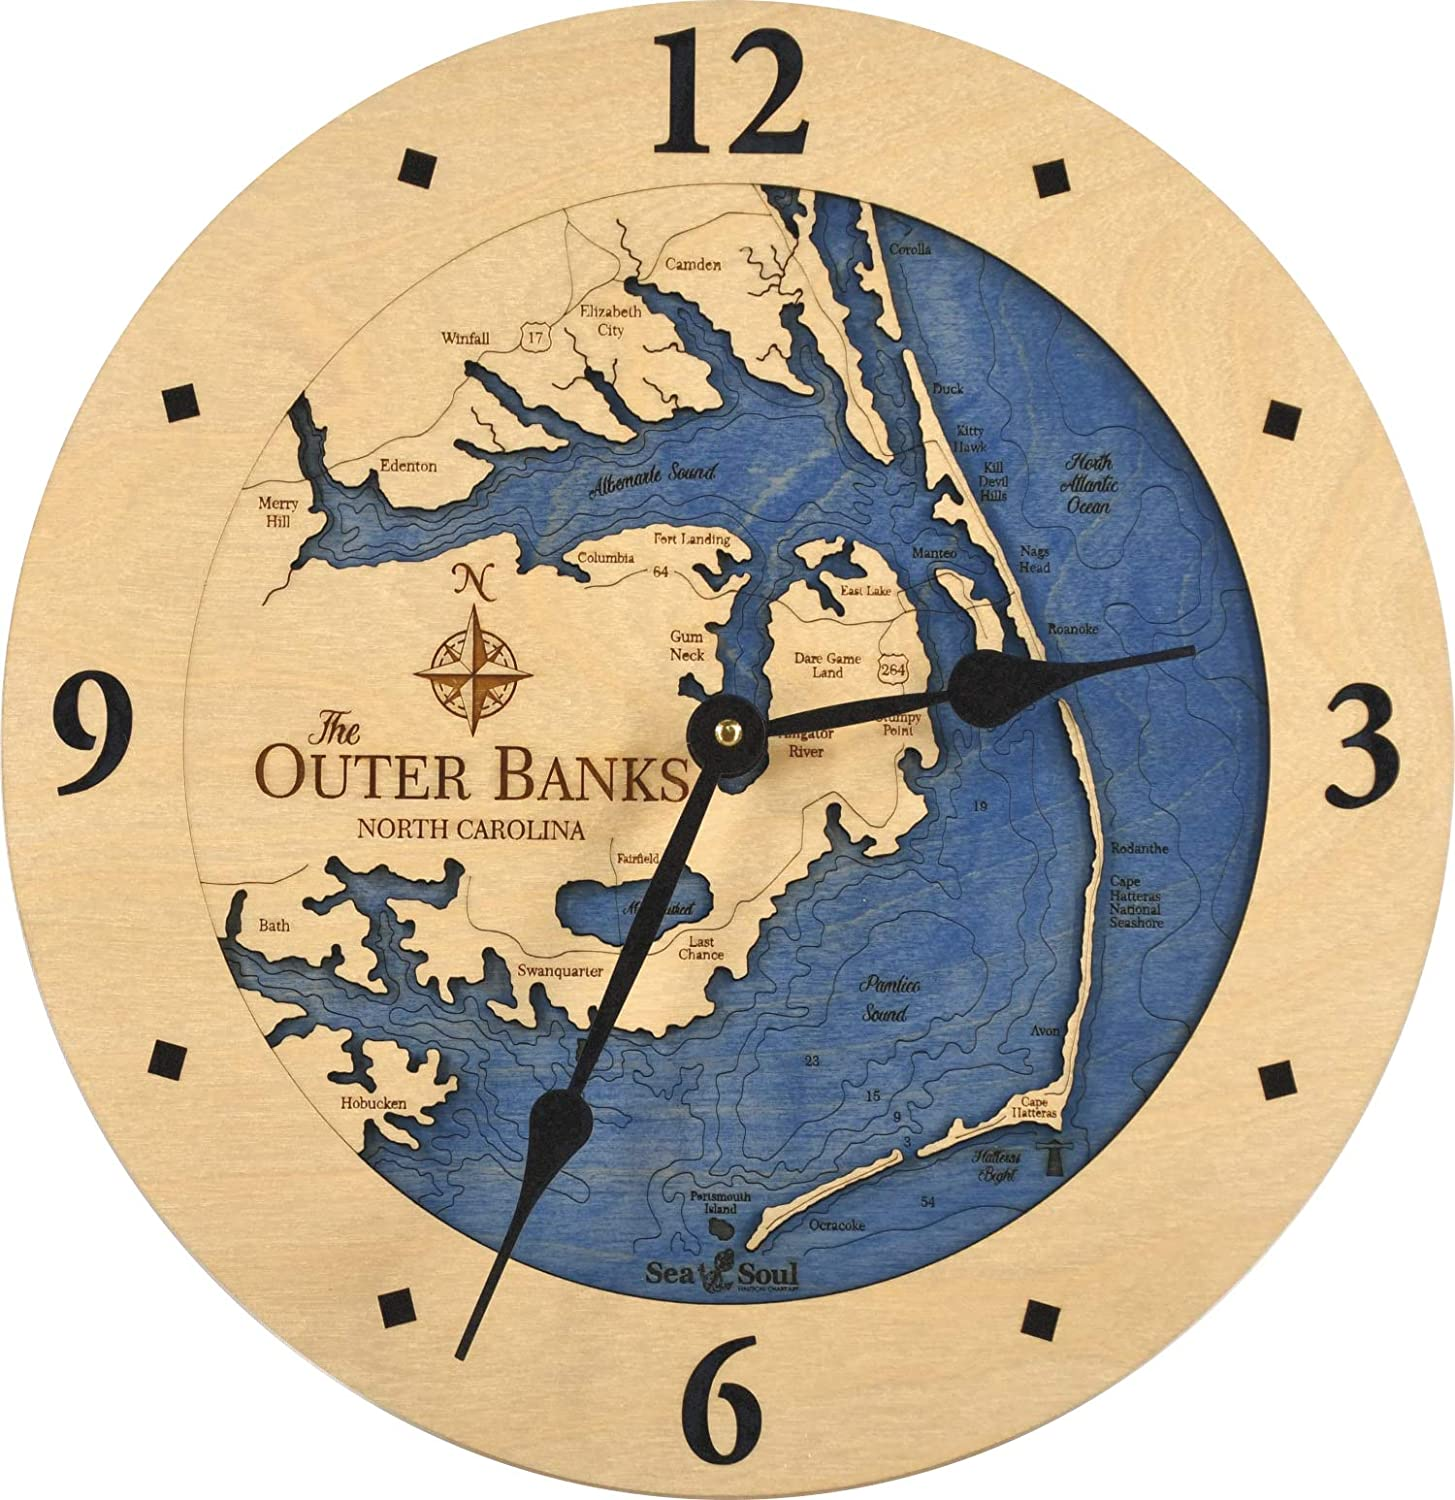 """Sea & Soul Outer Banks 3-D Nautical Wood Chart 12"""" Wall Clock, Handcrafted in The USA, Topographic Water Map Clock, Carved Lake Art Wall Clock, Coastal Décor (Deep Blue)"""